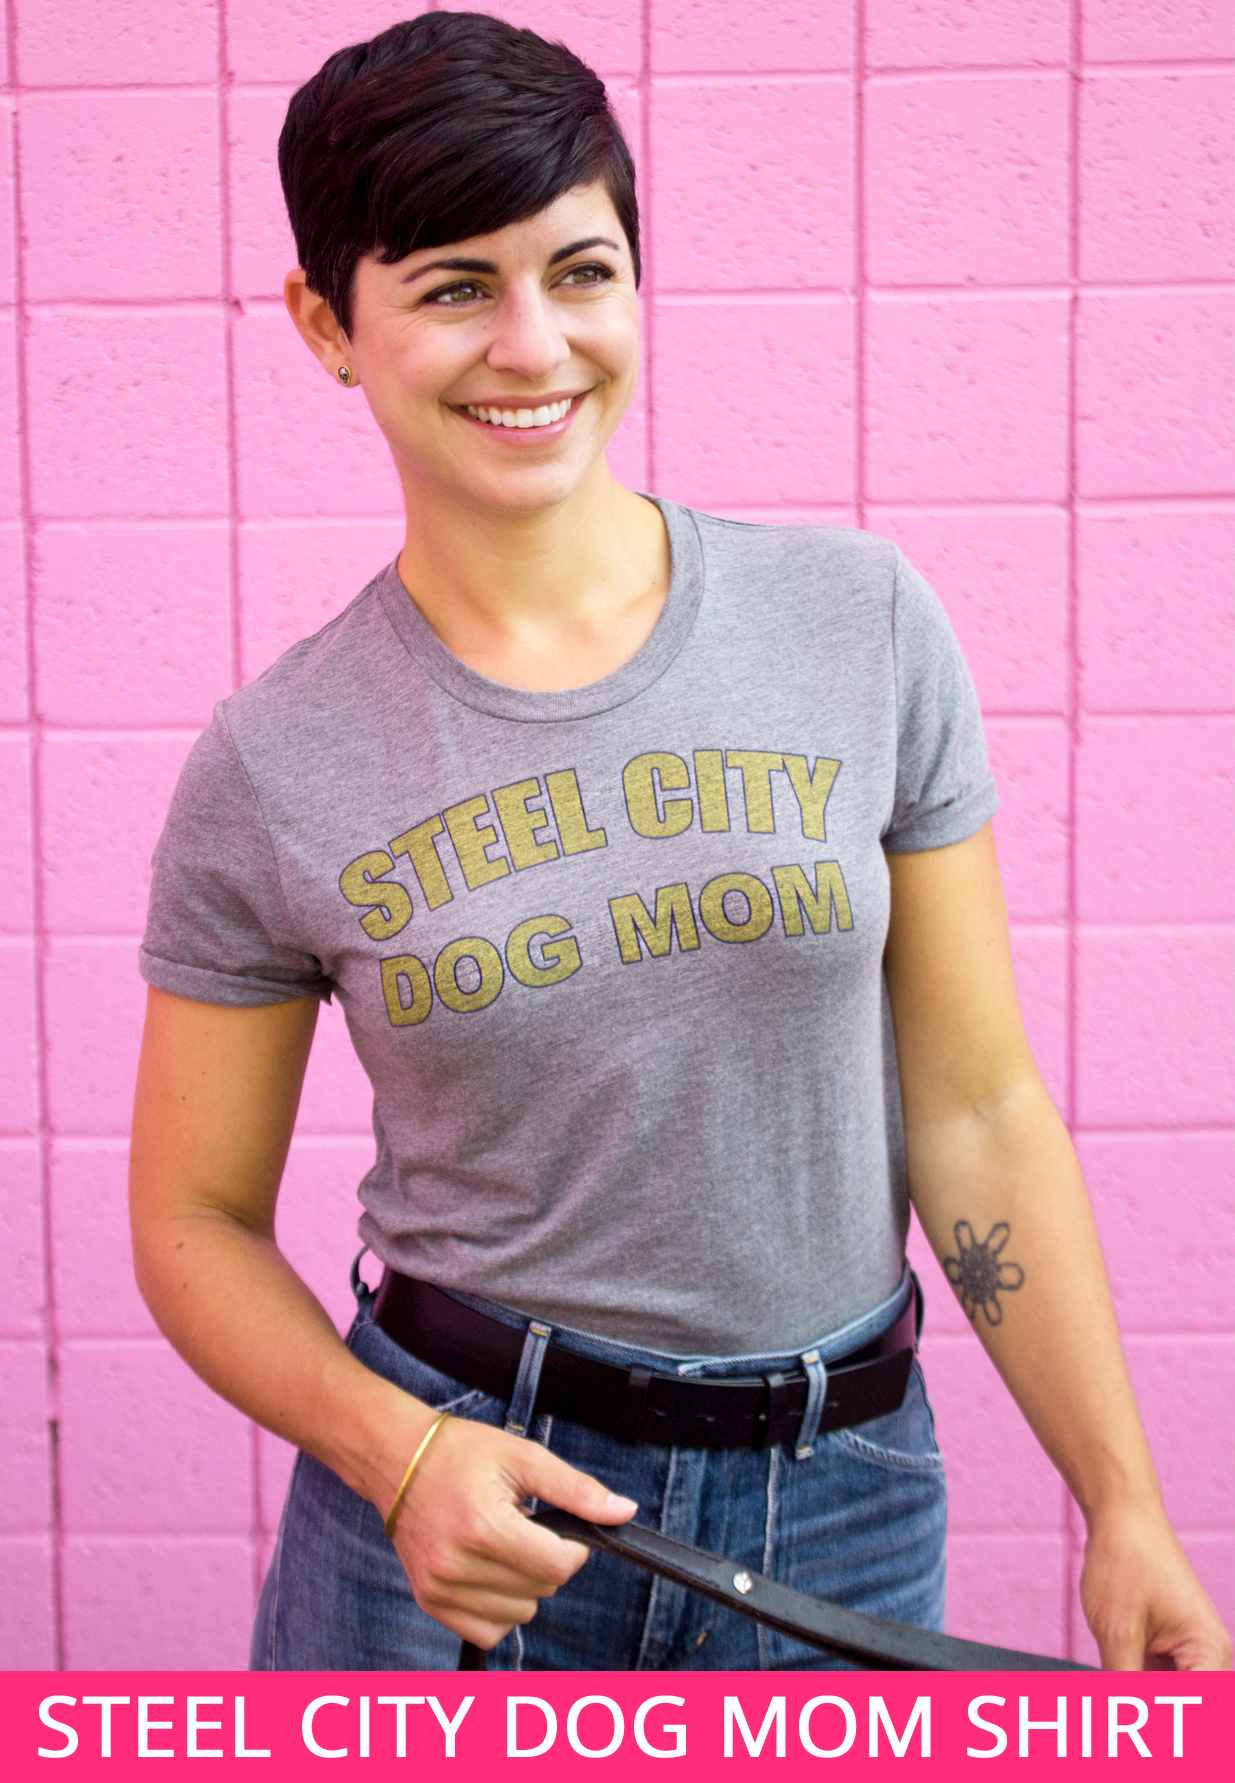 Steel City Dog Mom Shirt